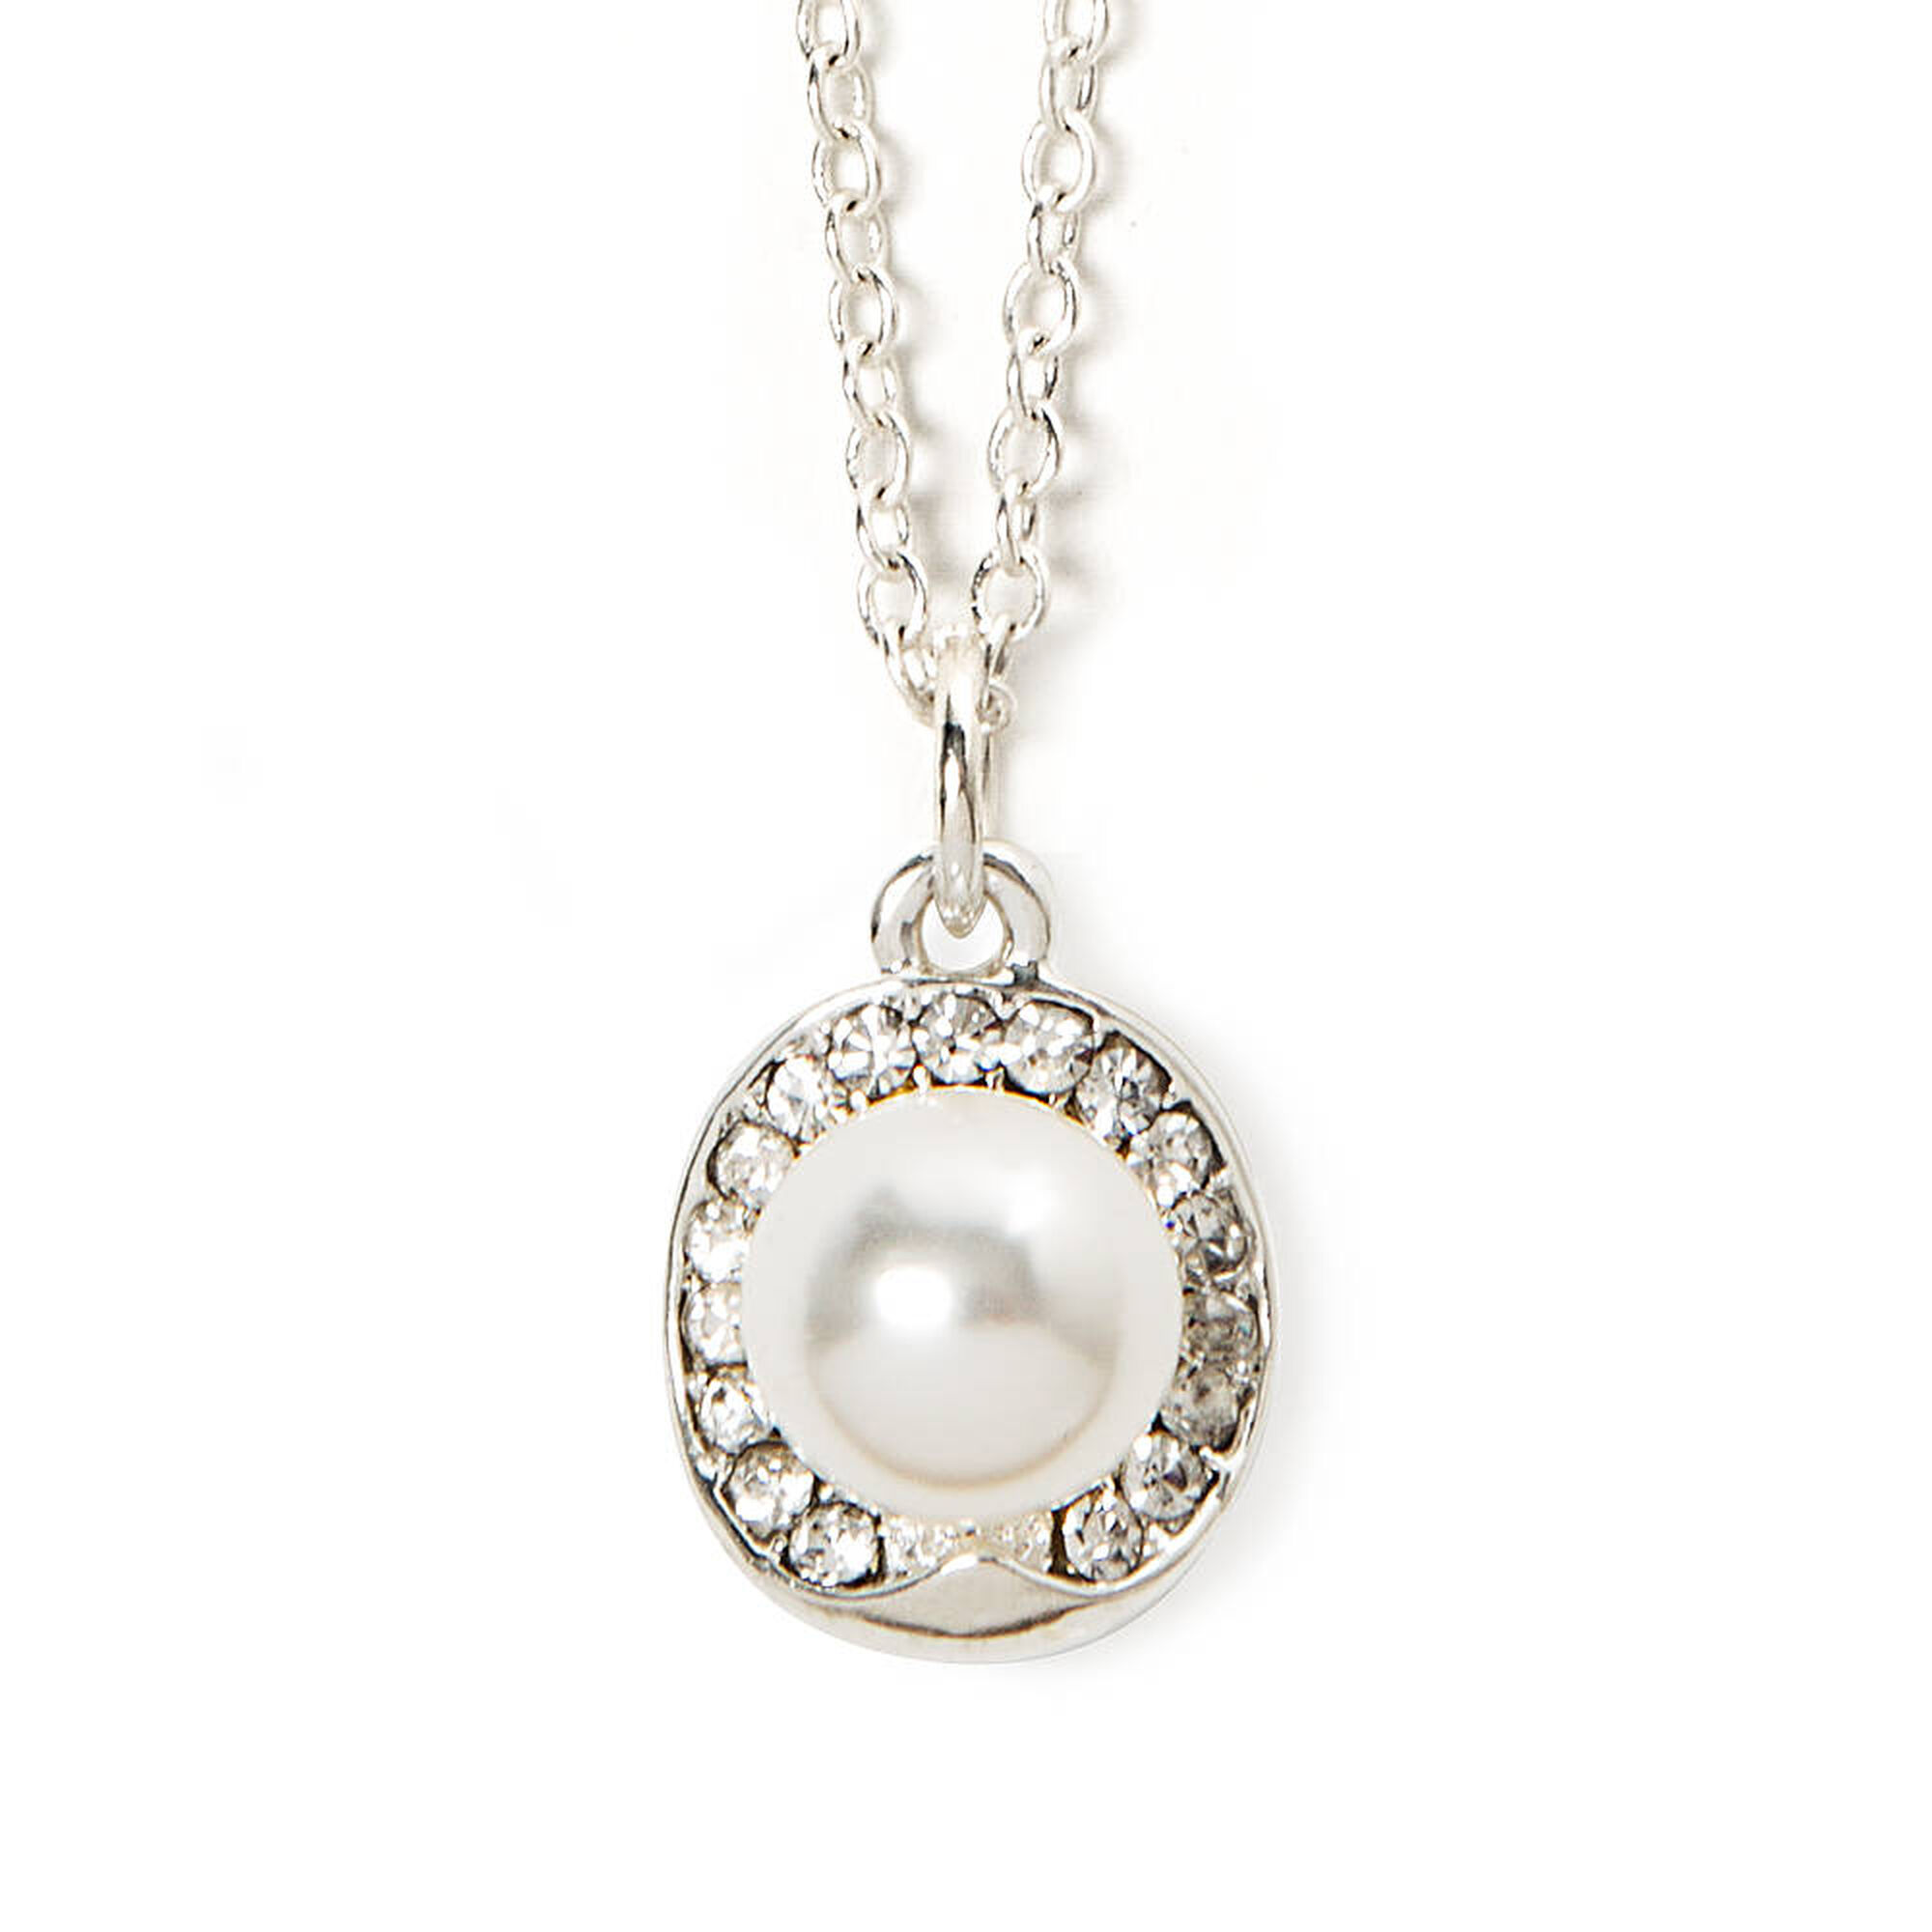 Rhinestone oval pearl solitaire pendant necklace icing us rhinestone oval amp pearl solitaire pendant necklace aloadofball Image collections